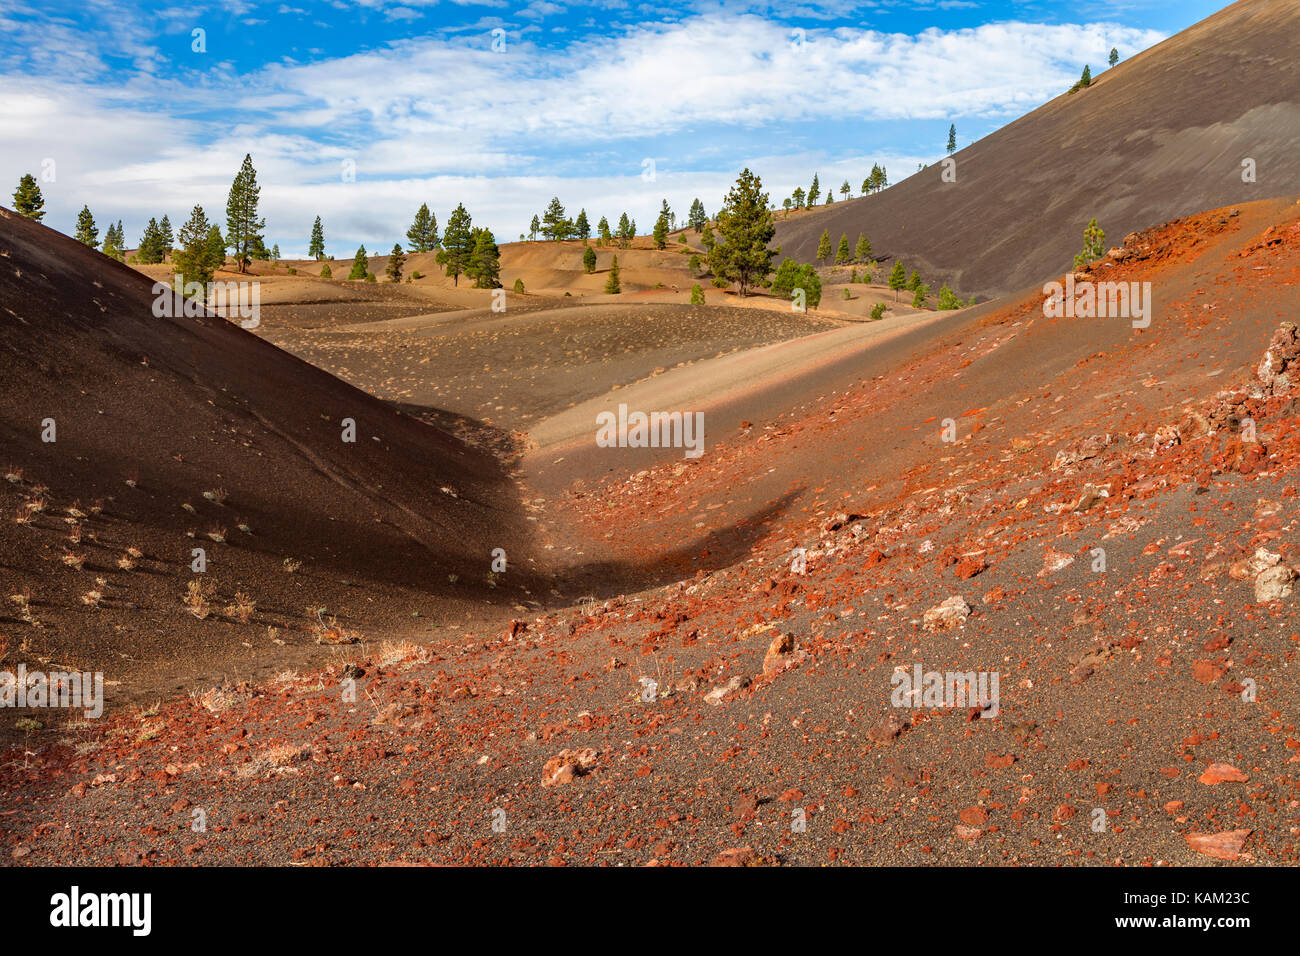 The Painted Dunes in Lassen Volcanic National Park - Stock Image